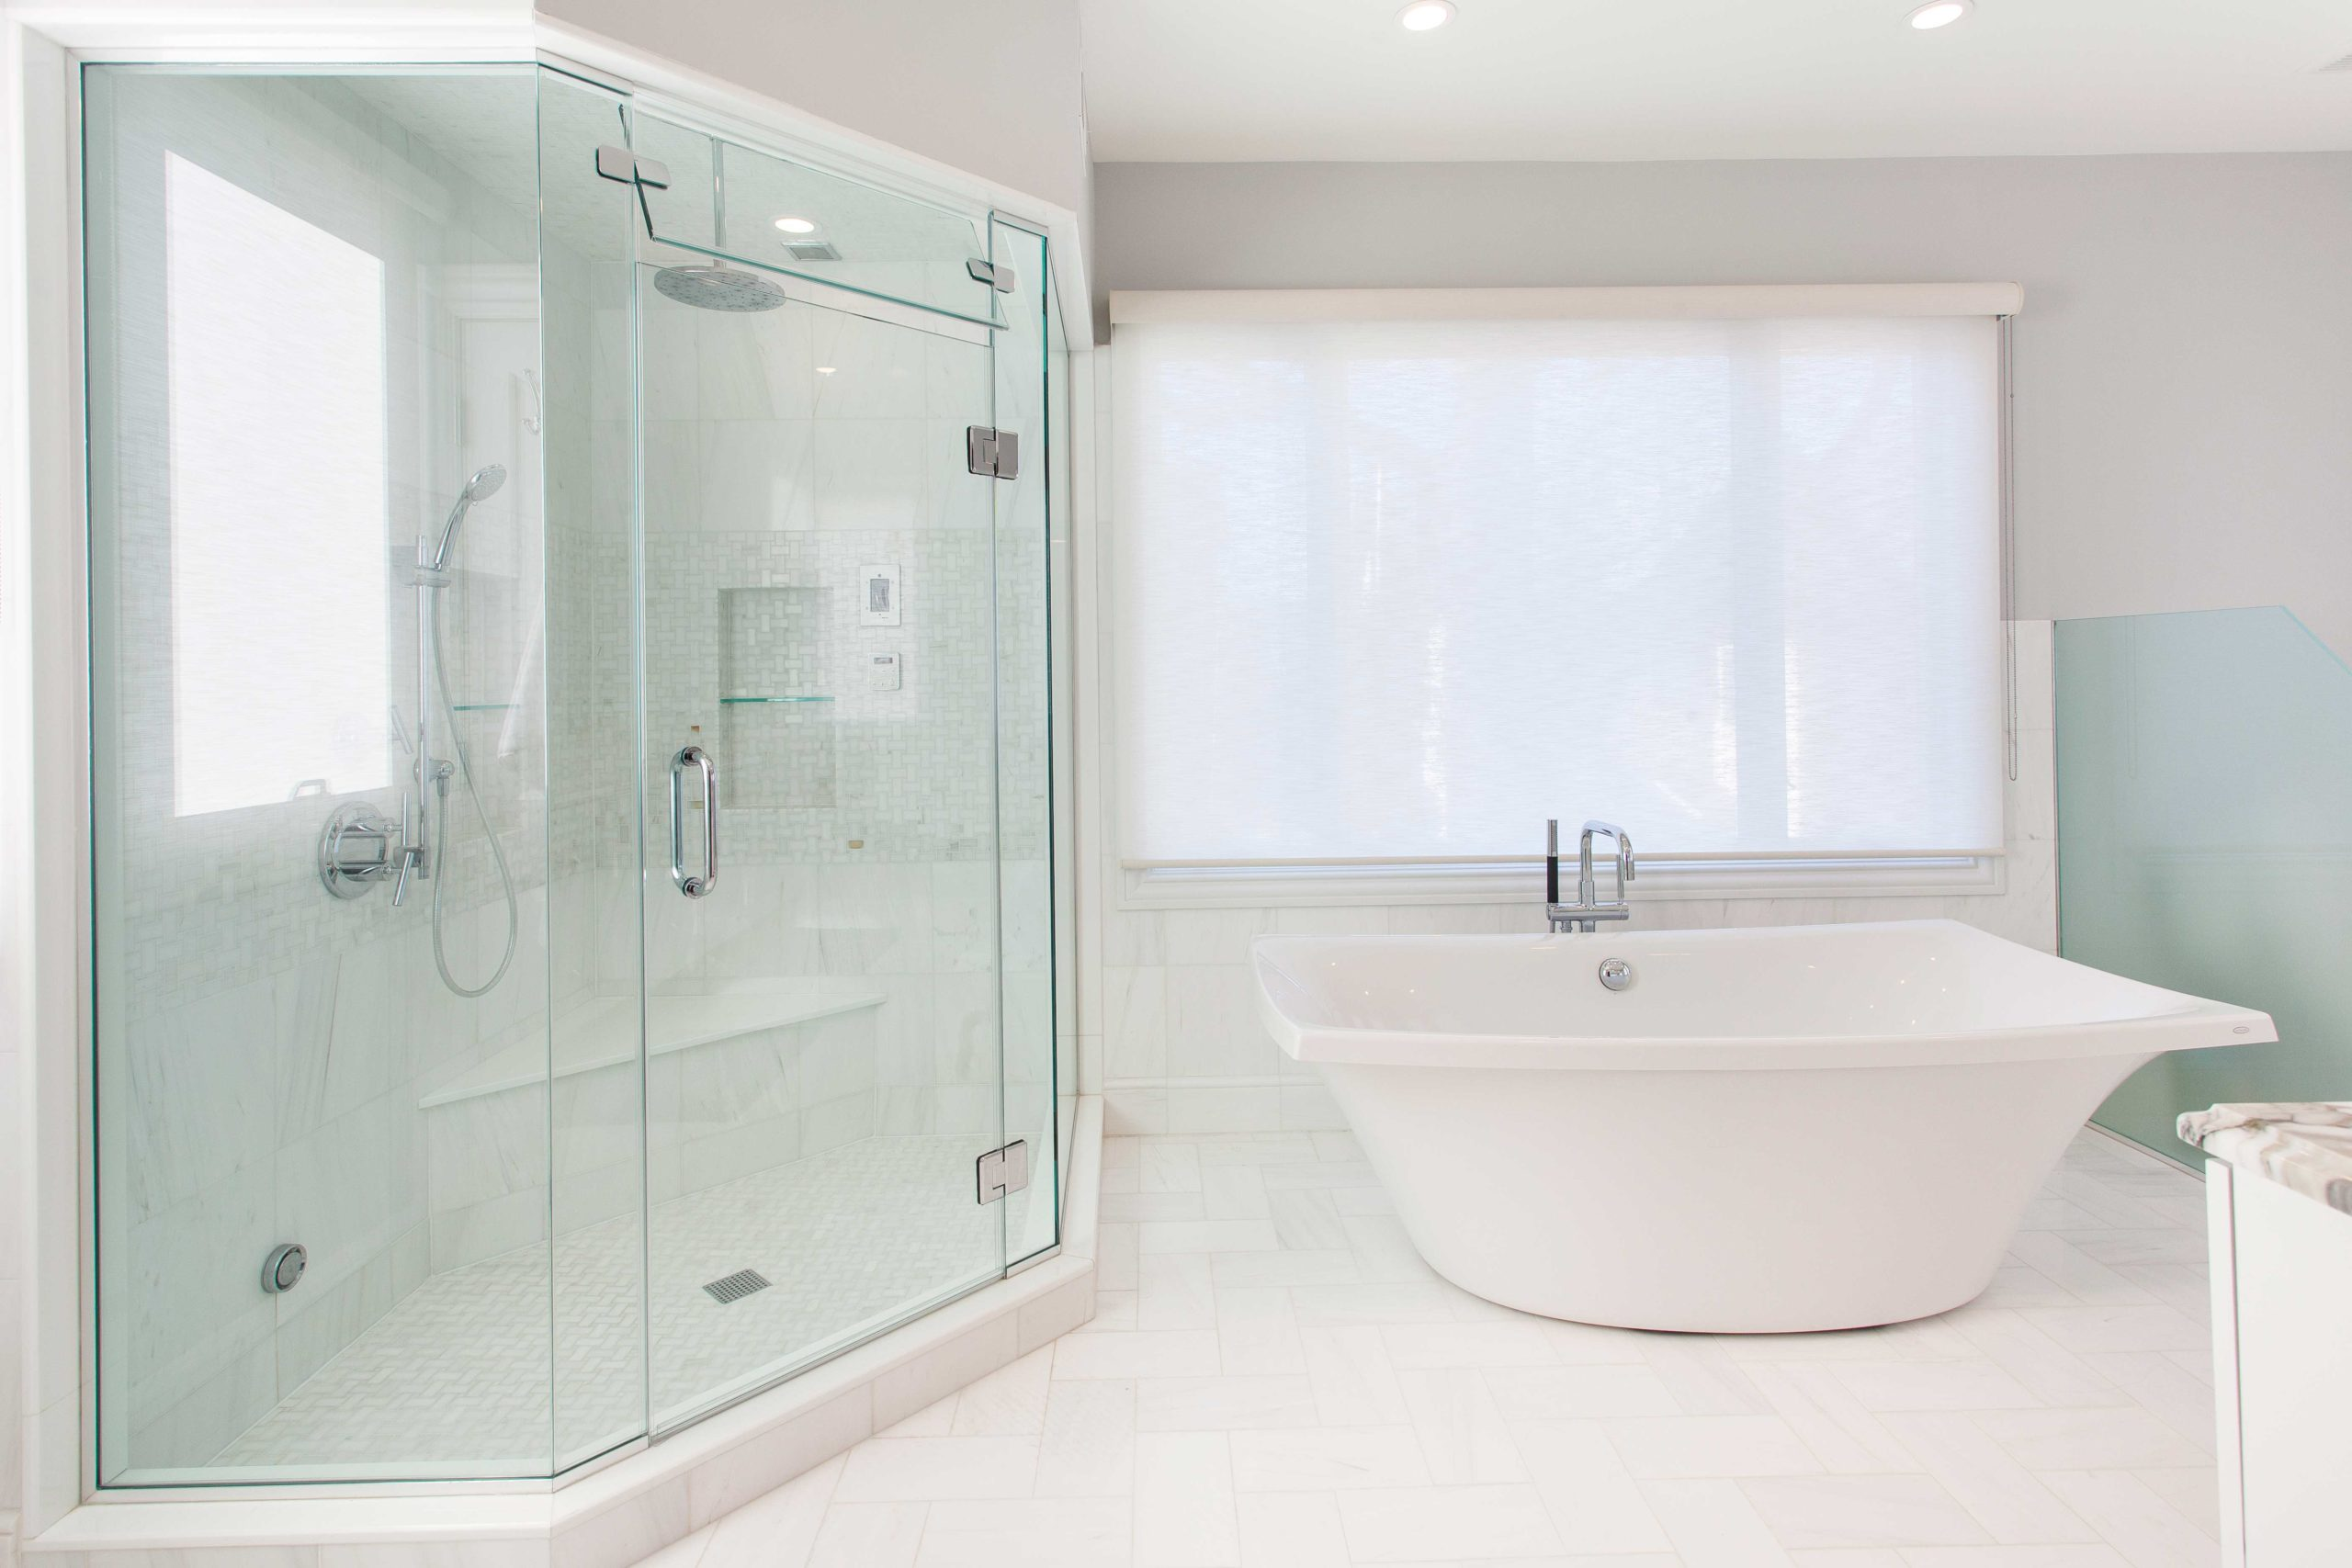 Bathroom remodeling service professional bathroom for Professional bathroom renovations